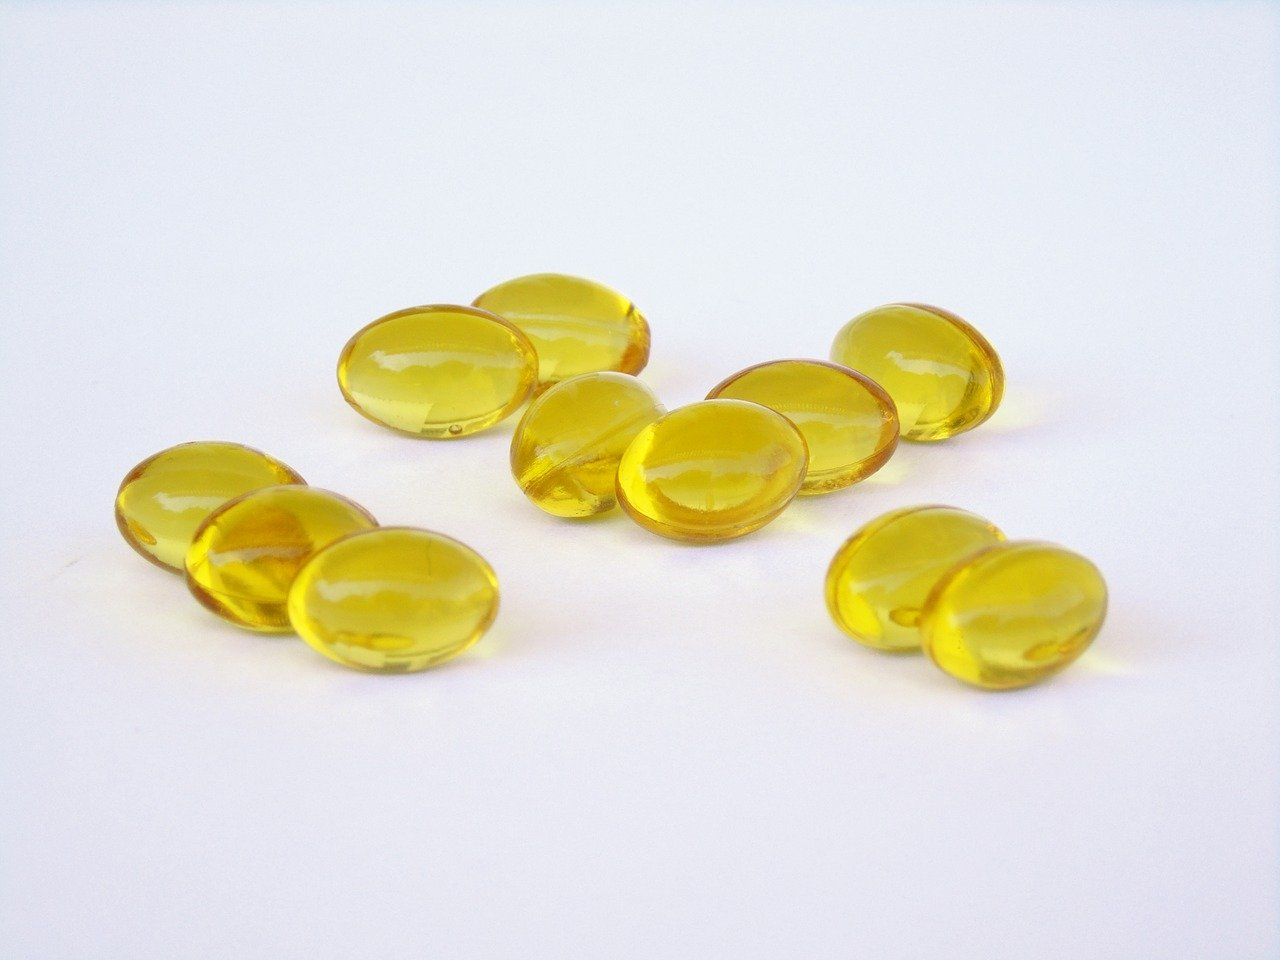 omega-3s supplements